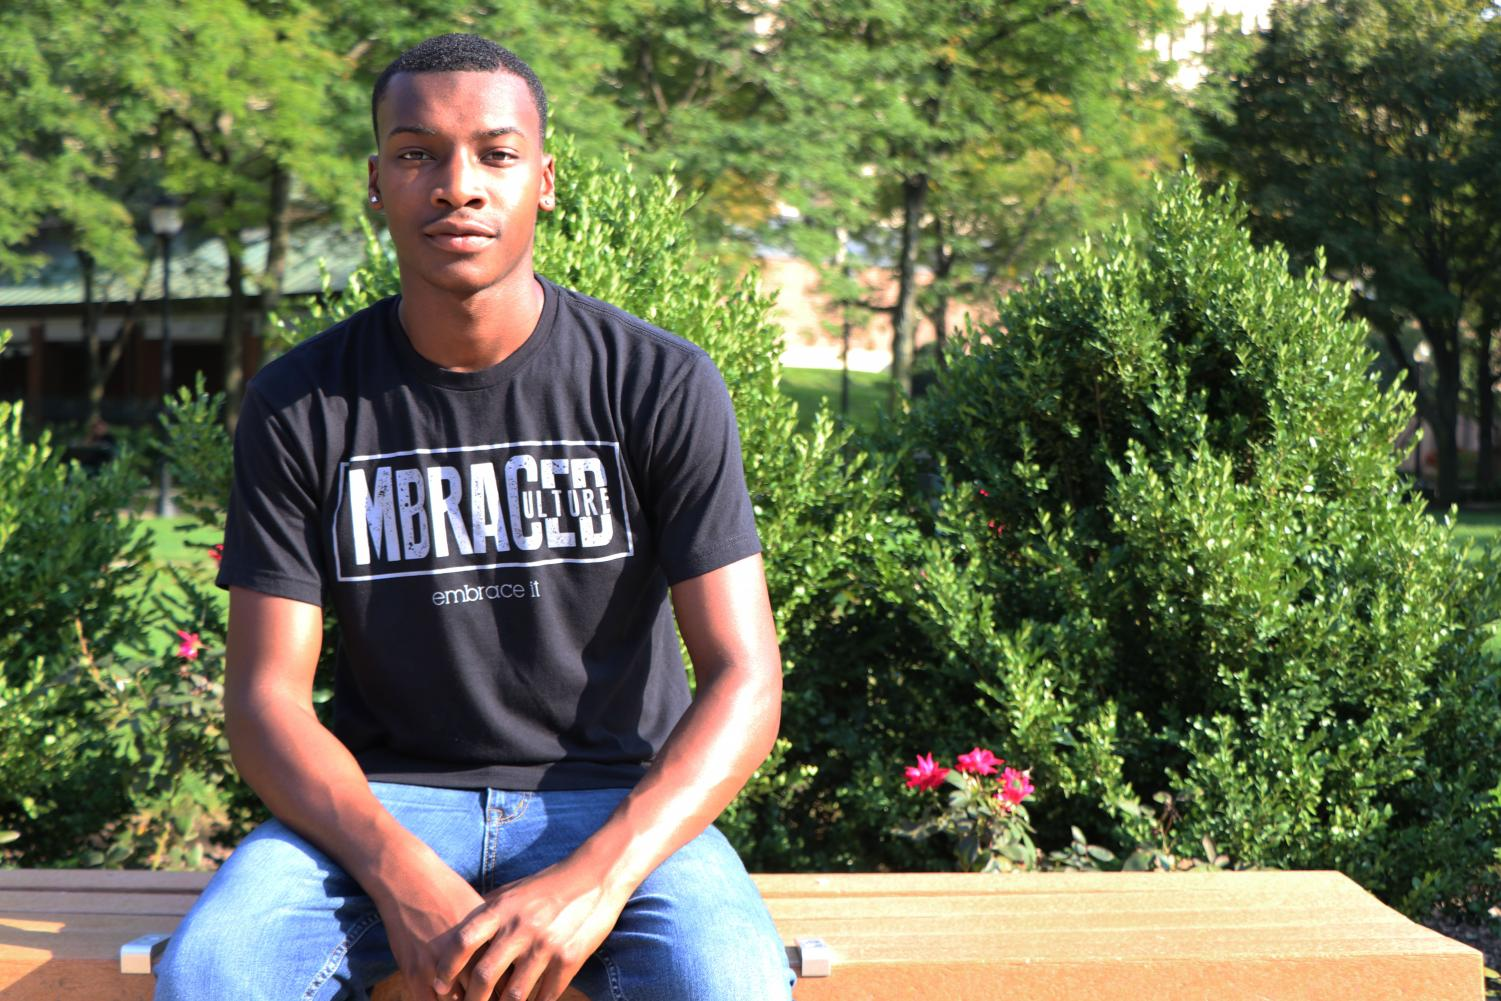 Braylen Stevens, above, is the founder of MBRACED Culture, an e-commerce brand that hopes to promote acceptance of others and create a sense of community.